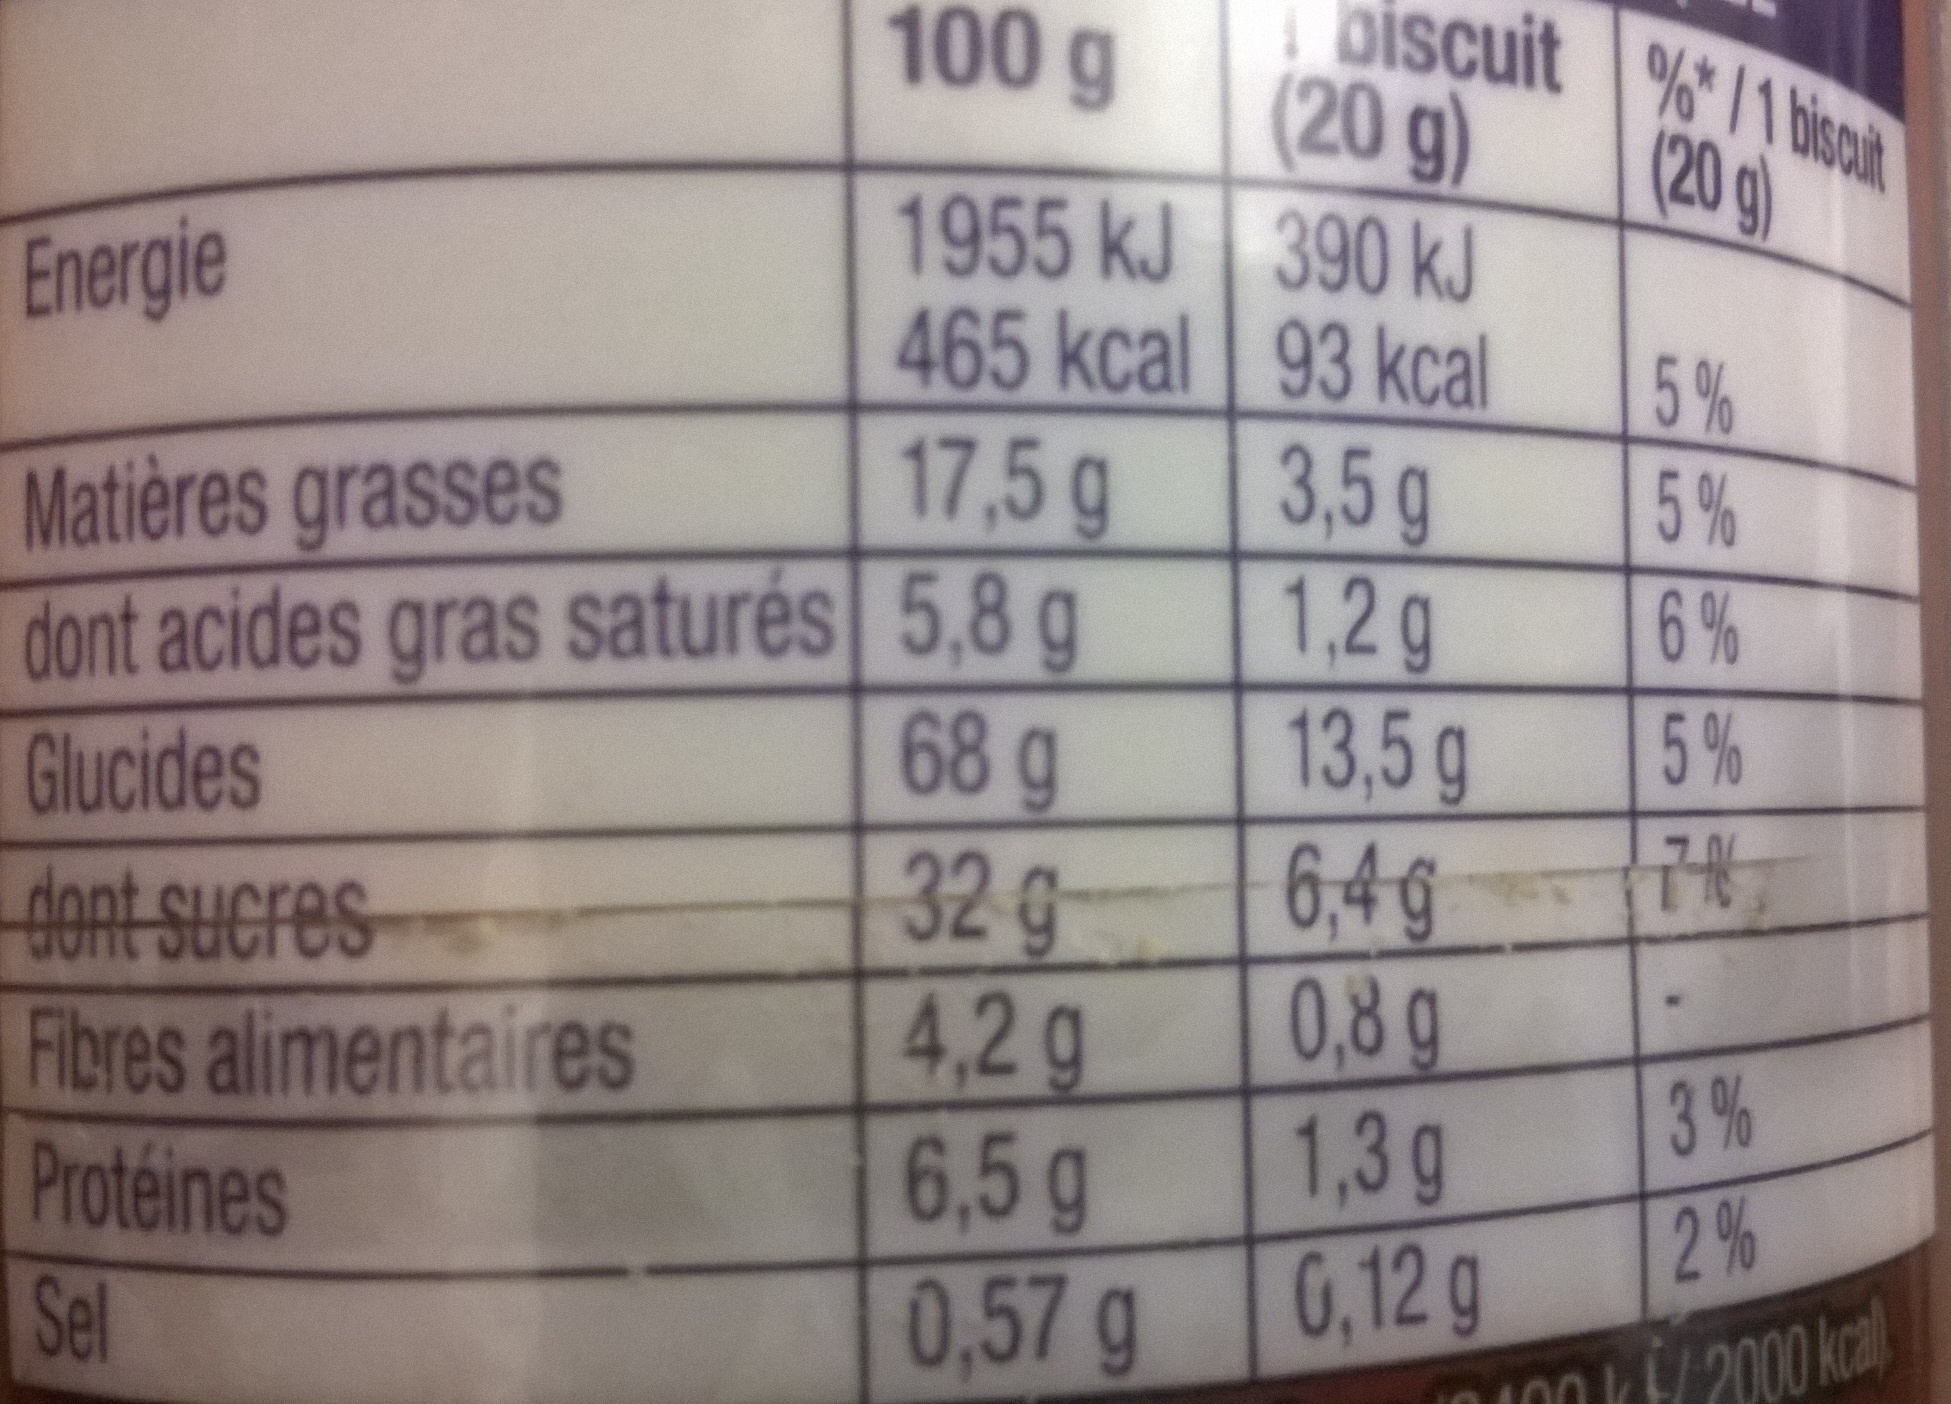 chico do brazil - Nutrition facts